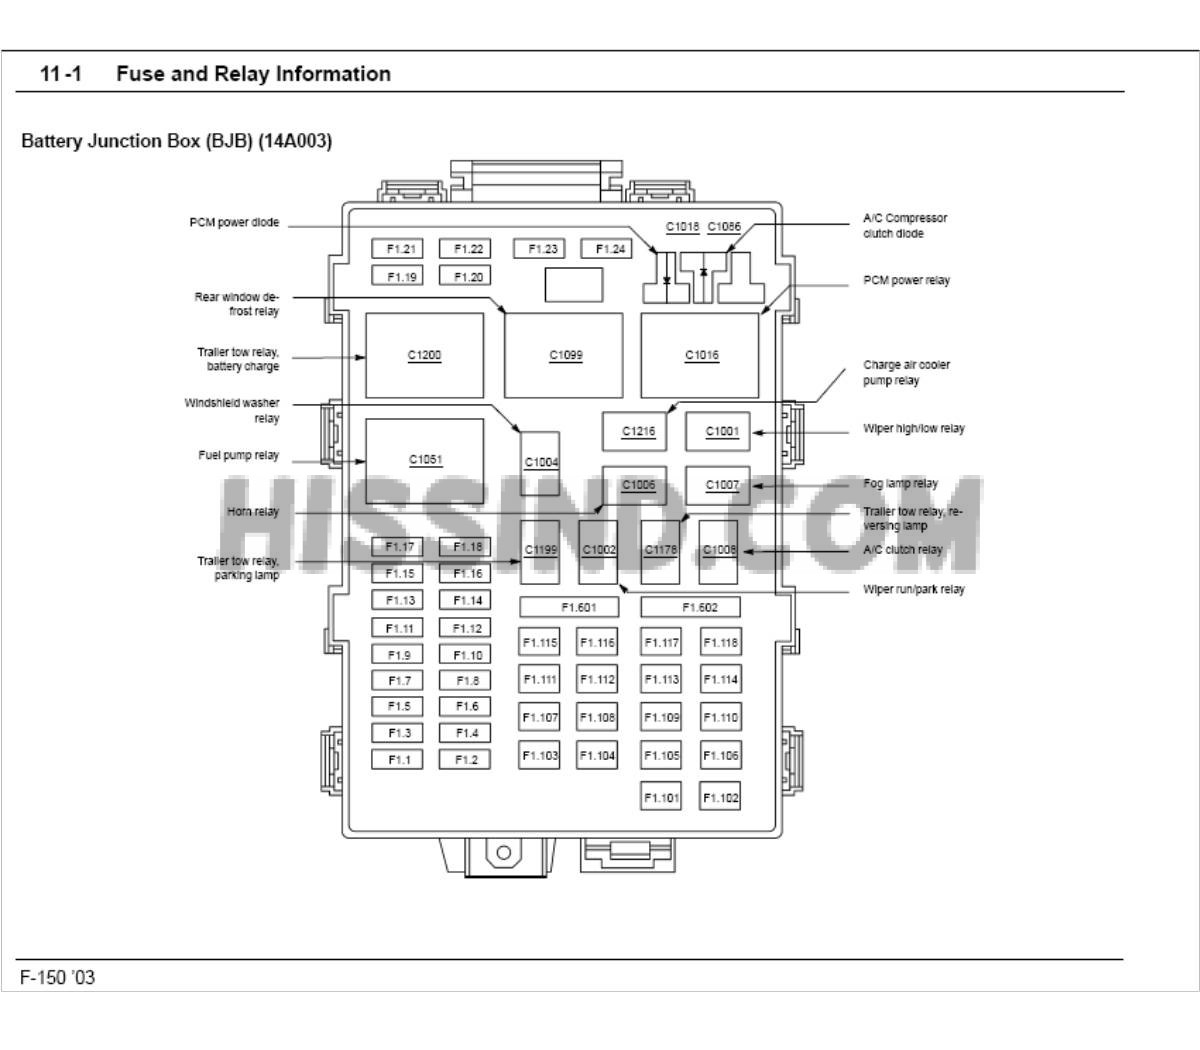 medium resolution of 2000 f150 fuse box diagram trusted wiring diagram 2004 hyundai santa fe fuse box diagram 05